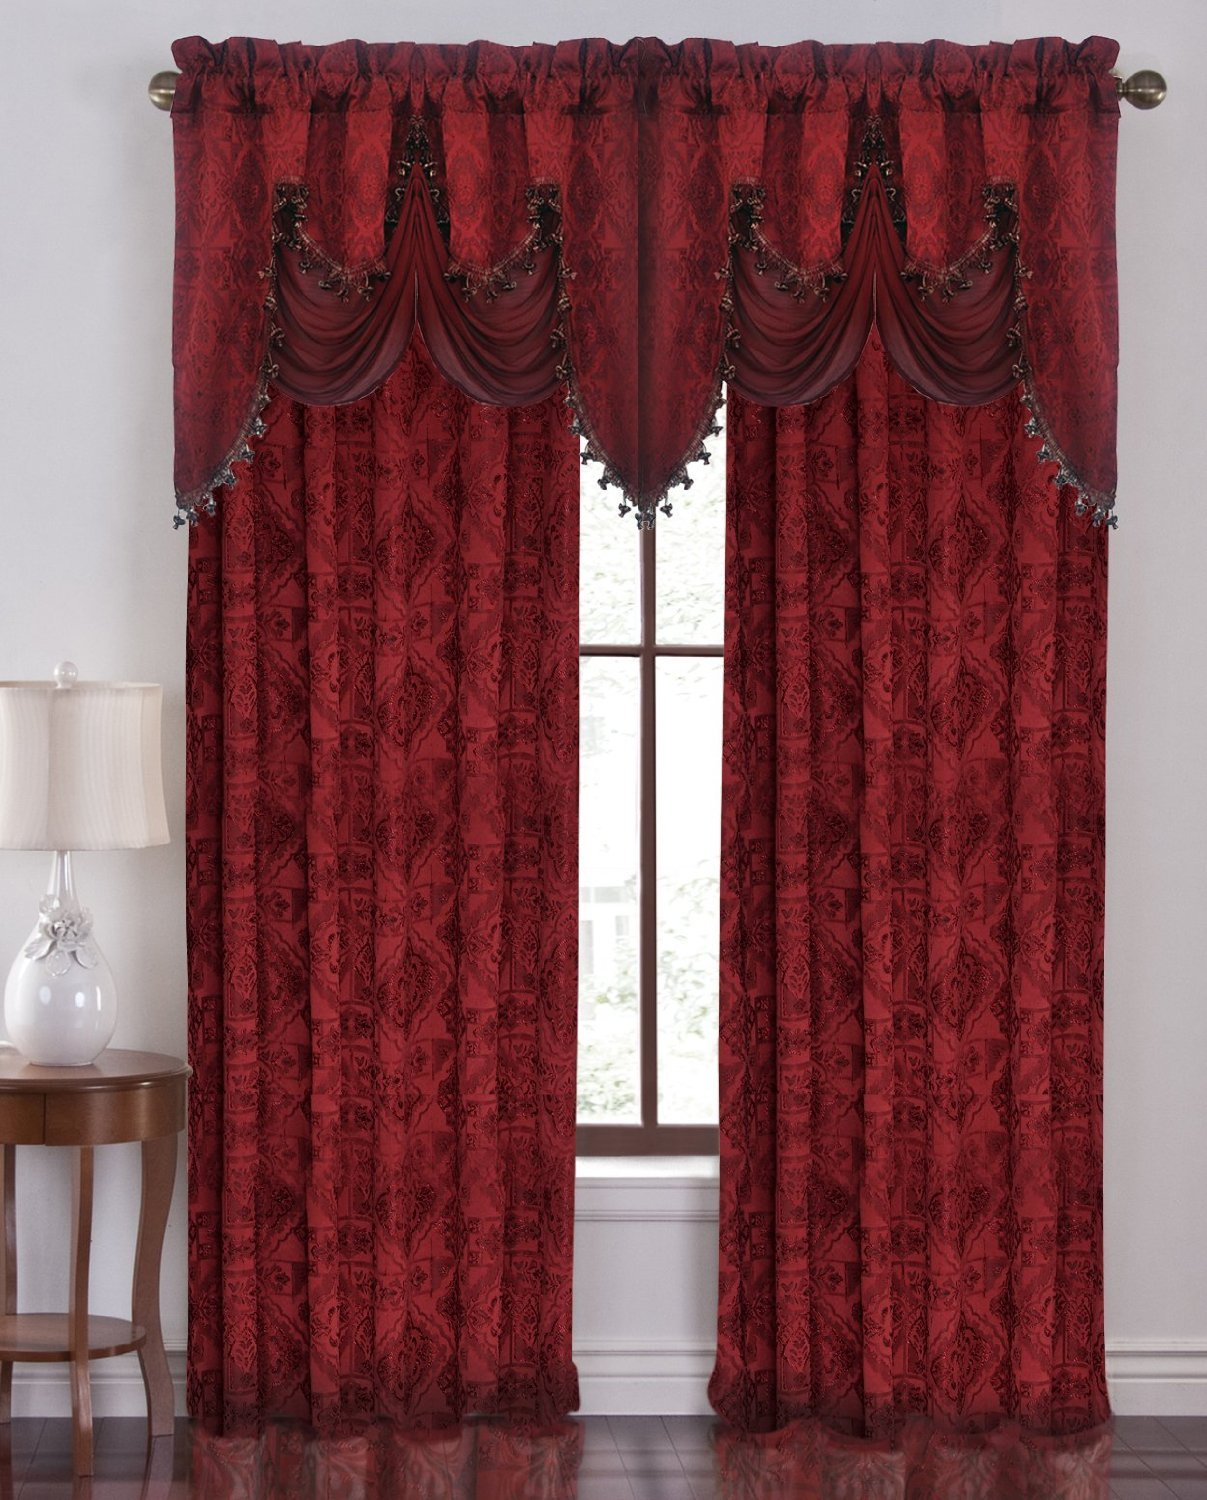 decor and chiffon window itm valance scarf tulle door valances drape new drapes voile sheer curtain